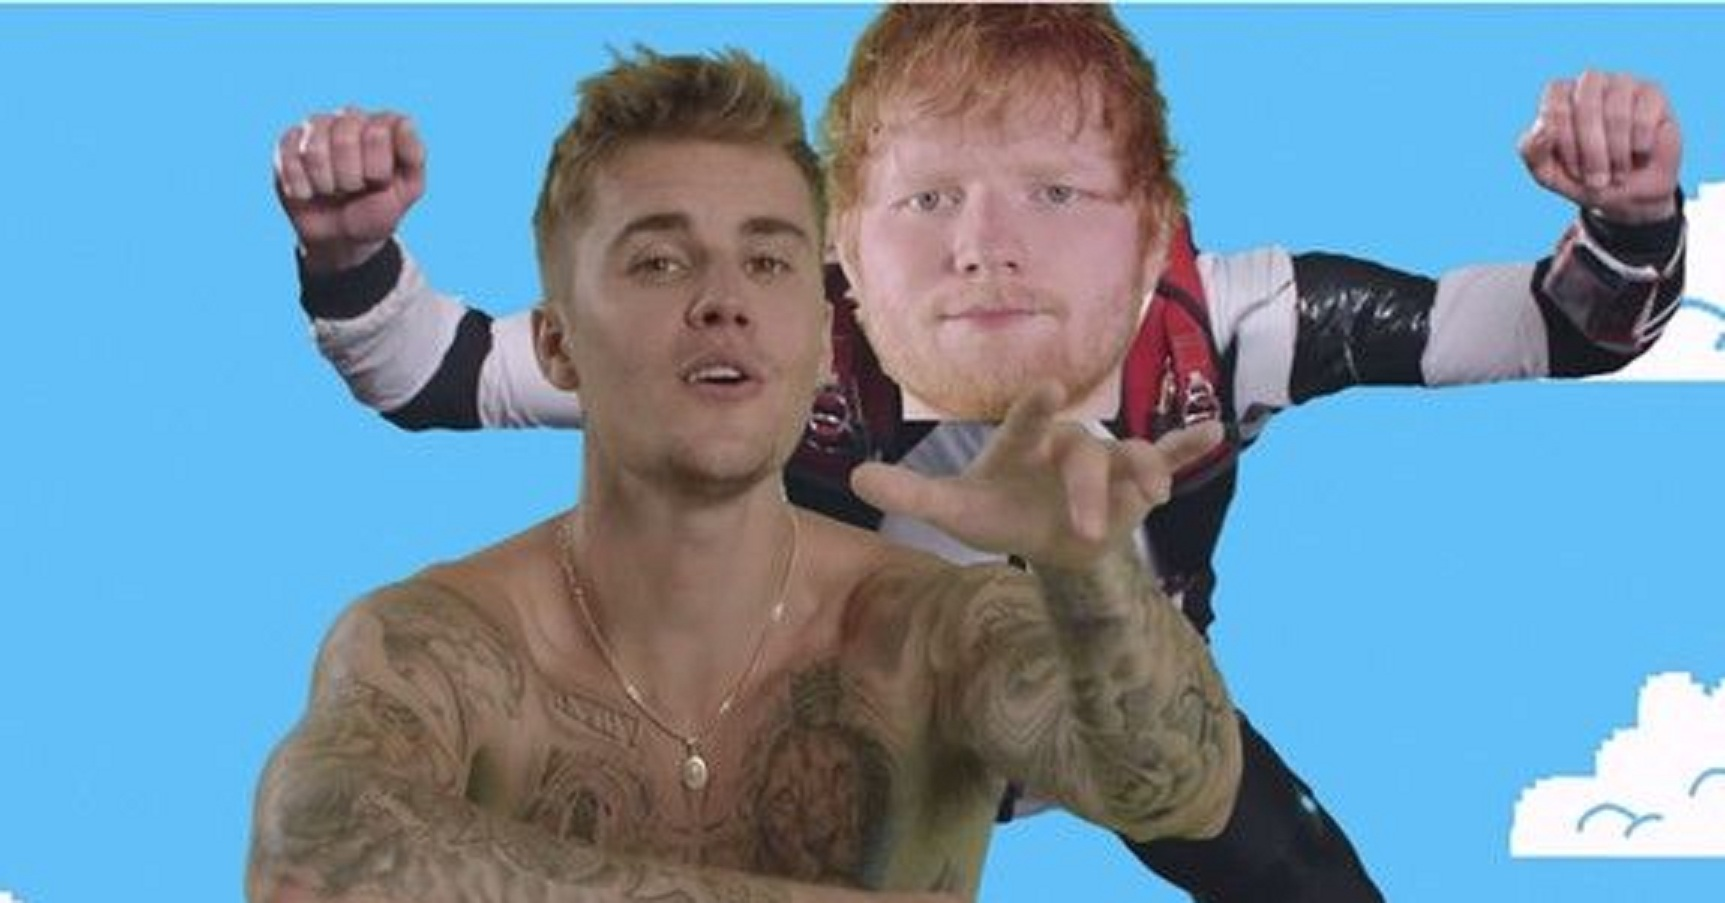 Free bieber mp3 love yourself song download Waptrick JUSTIN